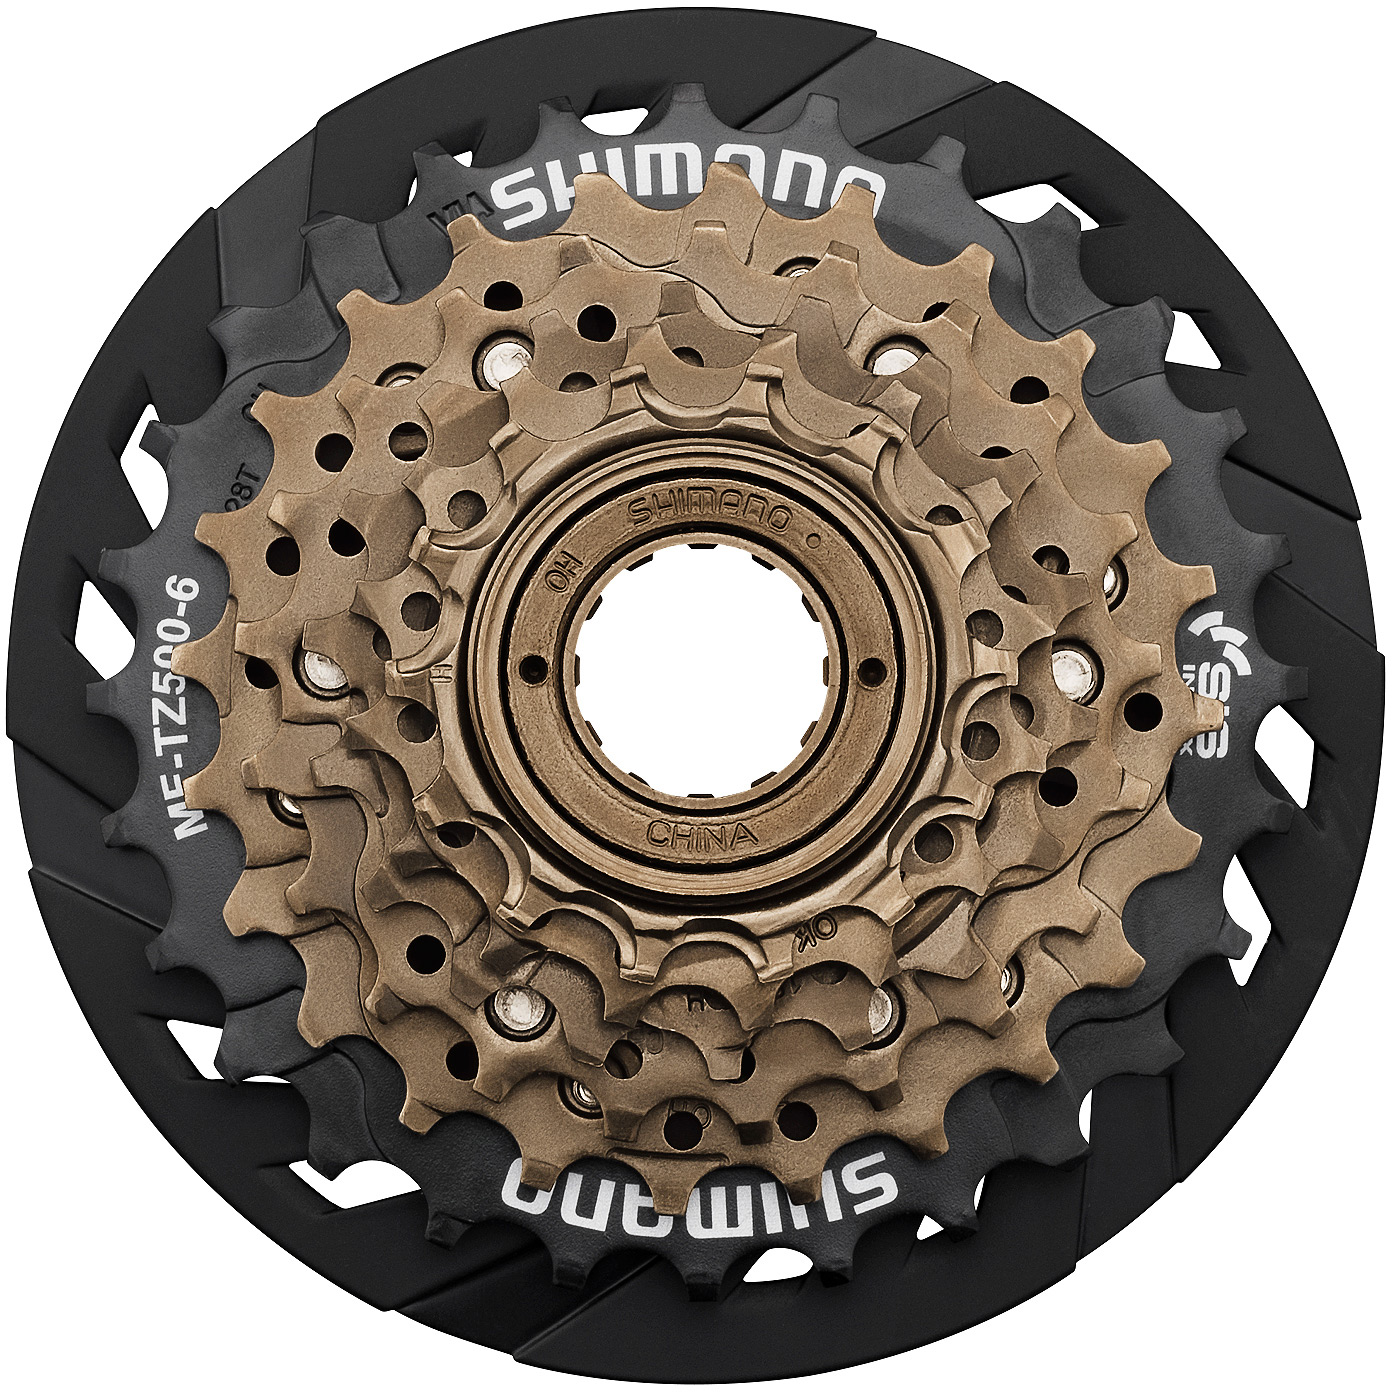 Shimano Tourney - MF-TZ500 7-speed multiple freewheel, 14-28 tooth